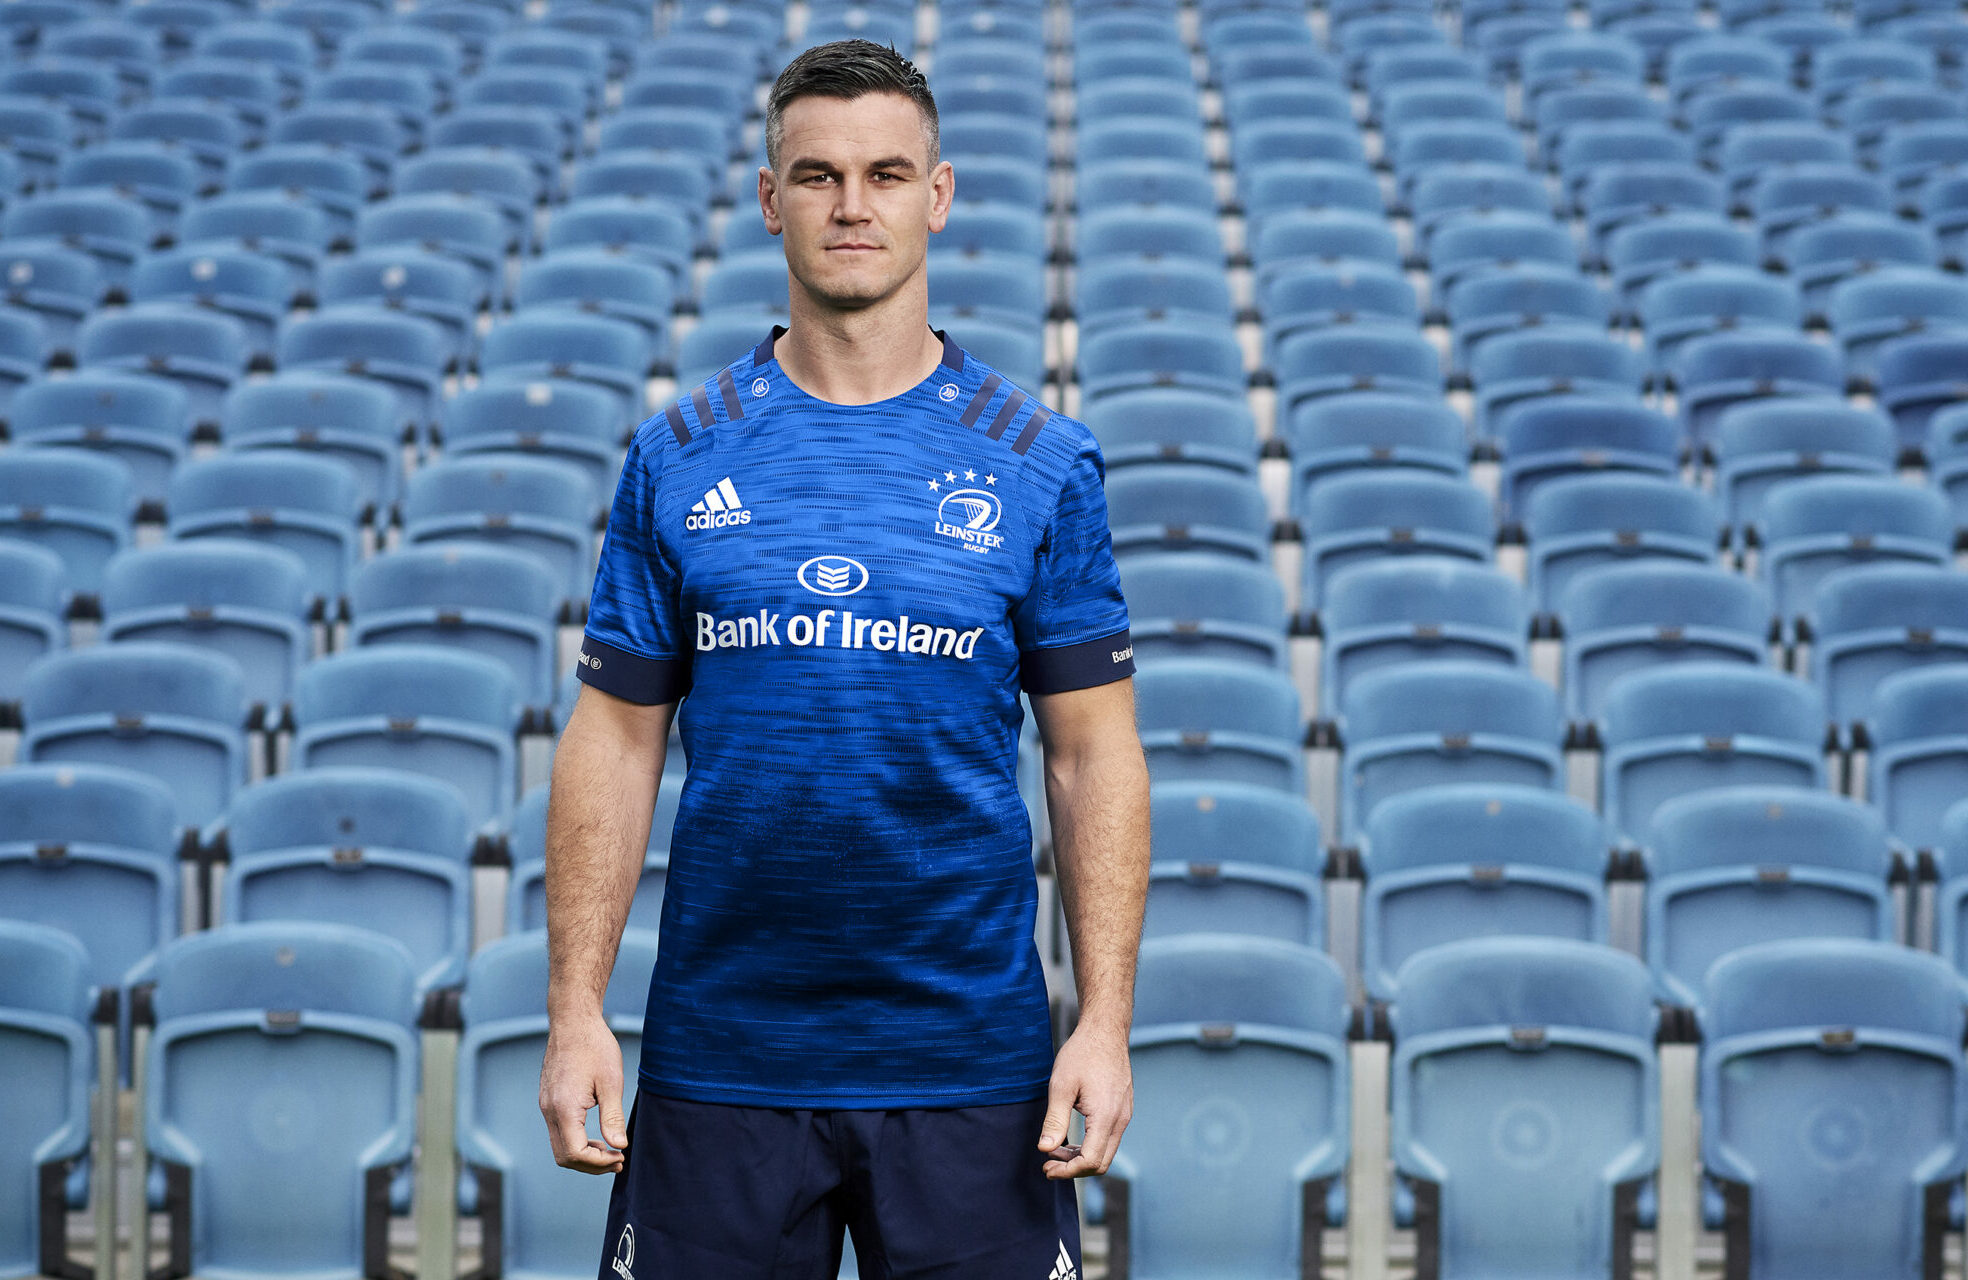 catalogar Culpable plato  Leinster Rugby | Leinster Rugby reveals new adidas home kit for 2020/21